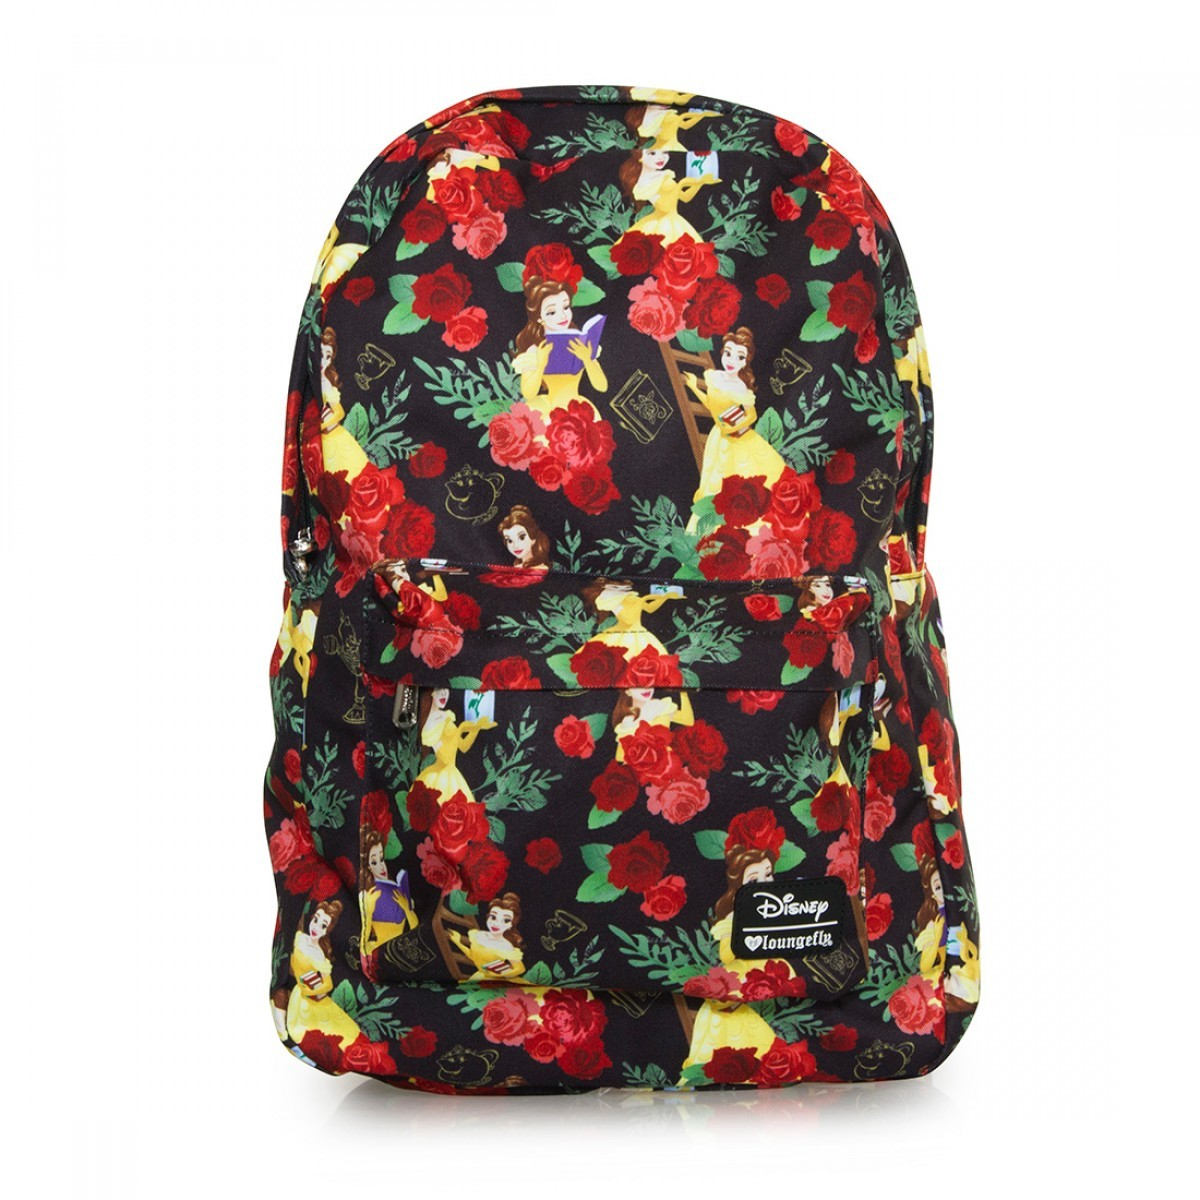 Loungefly Disney Beauty & The Beast Roses Backpack image